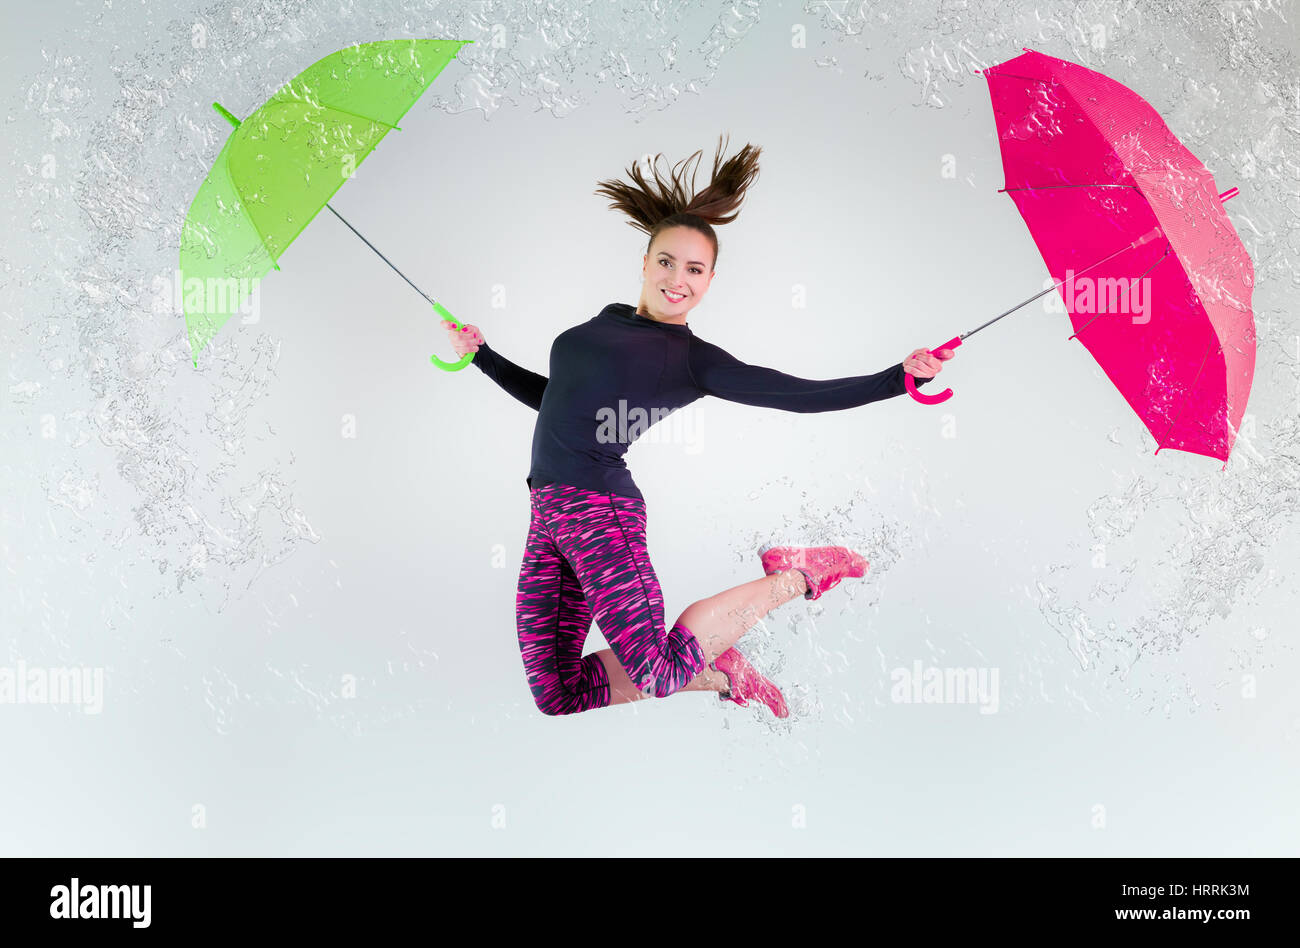 Woman in jump with an umbrella. Frozen motion. - Stock Image